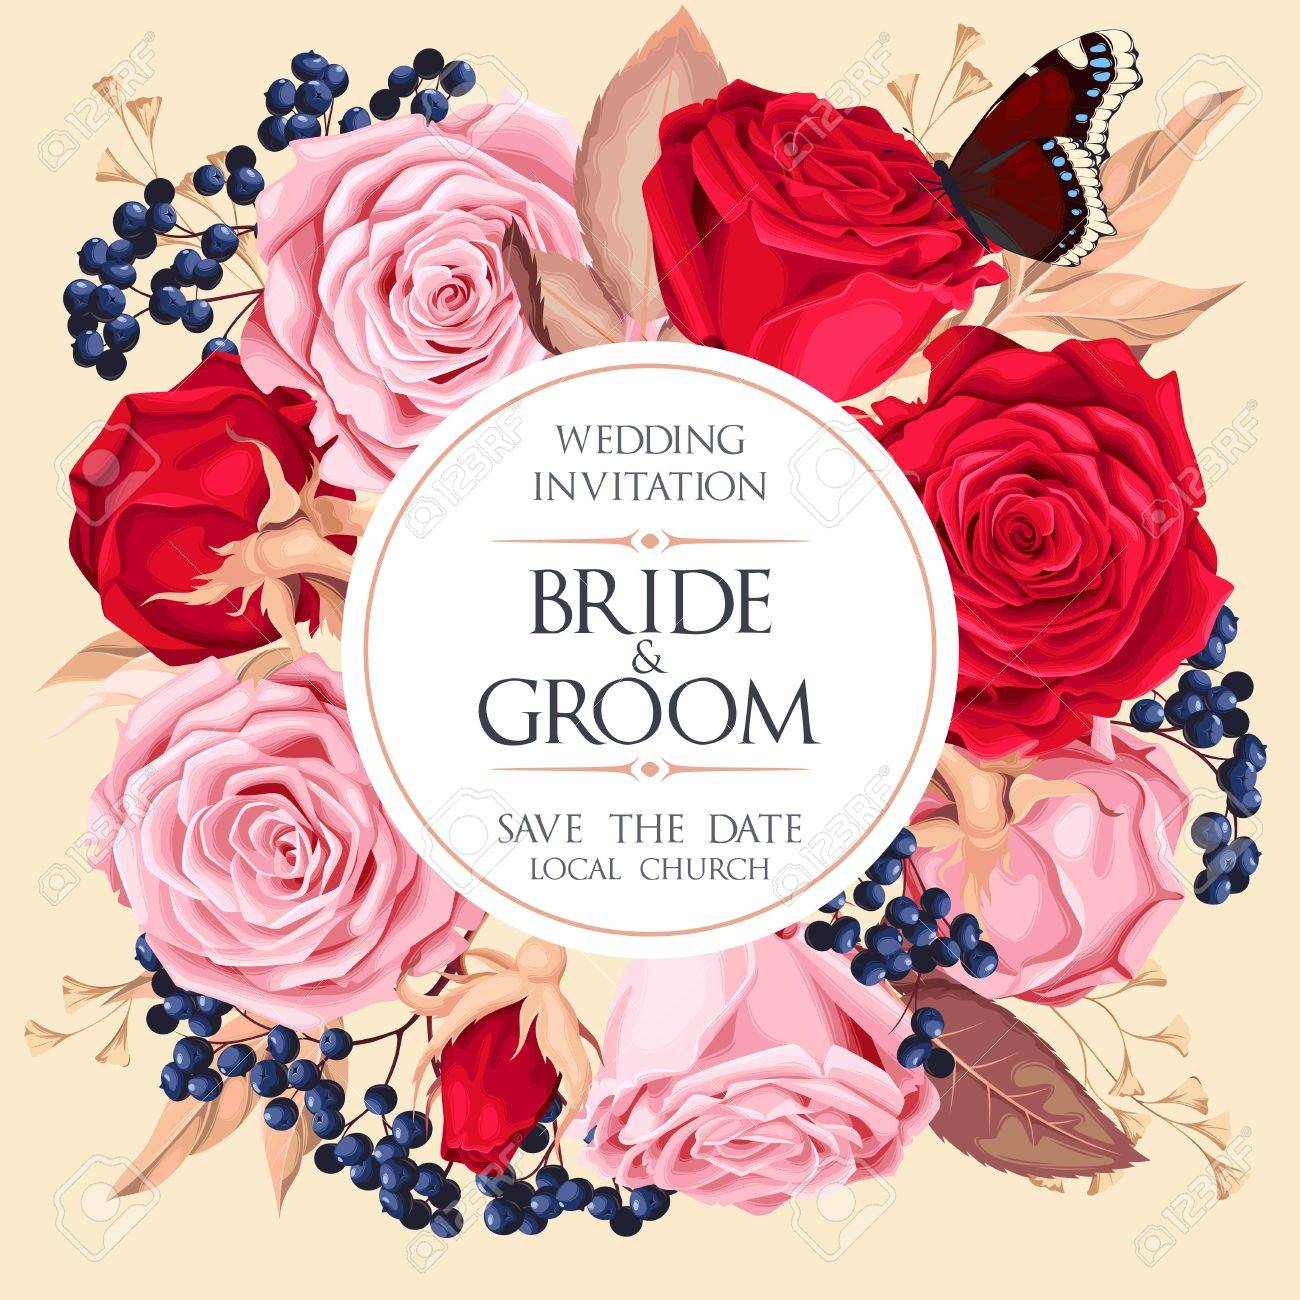 Vintage Wedding Invitation Royalty Free Cliparts, Vectors, And Stock ...